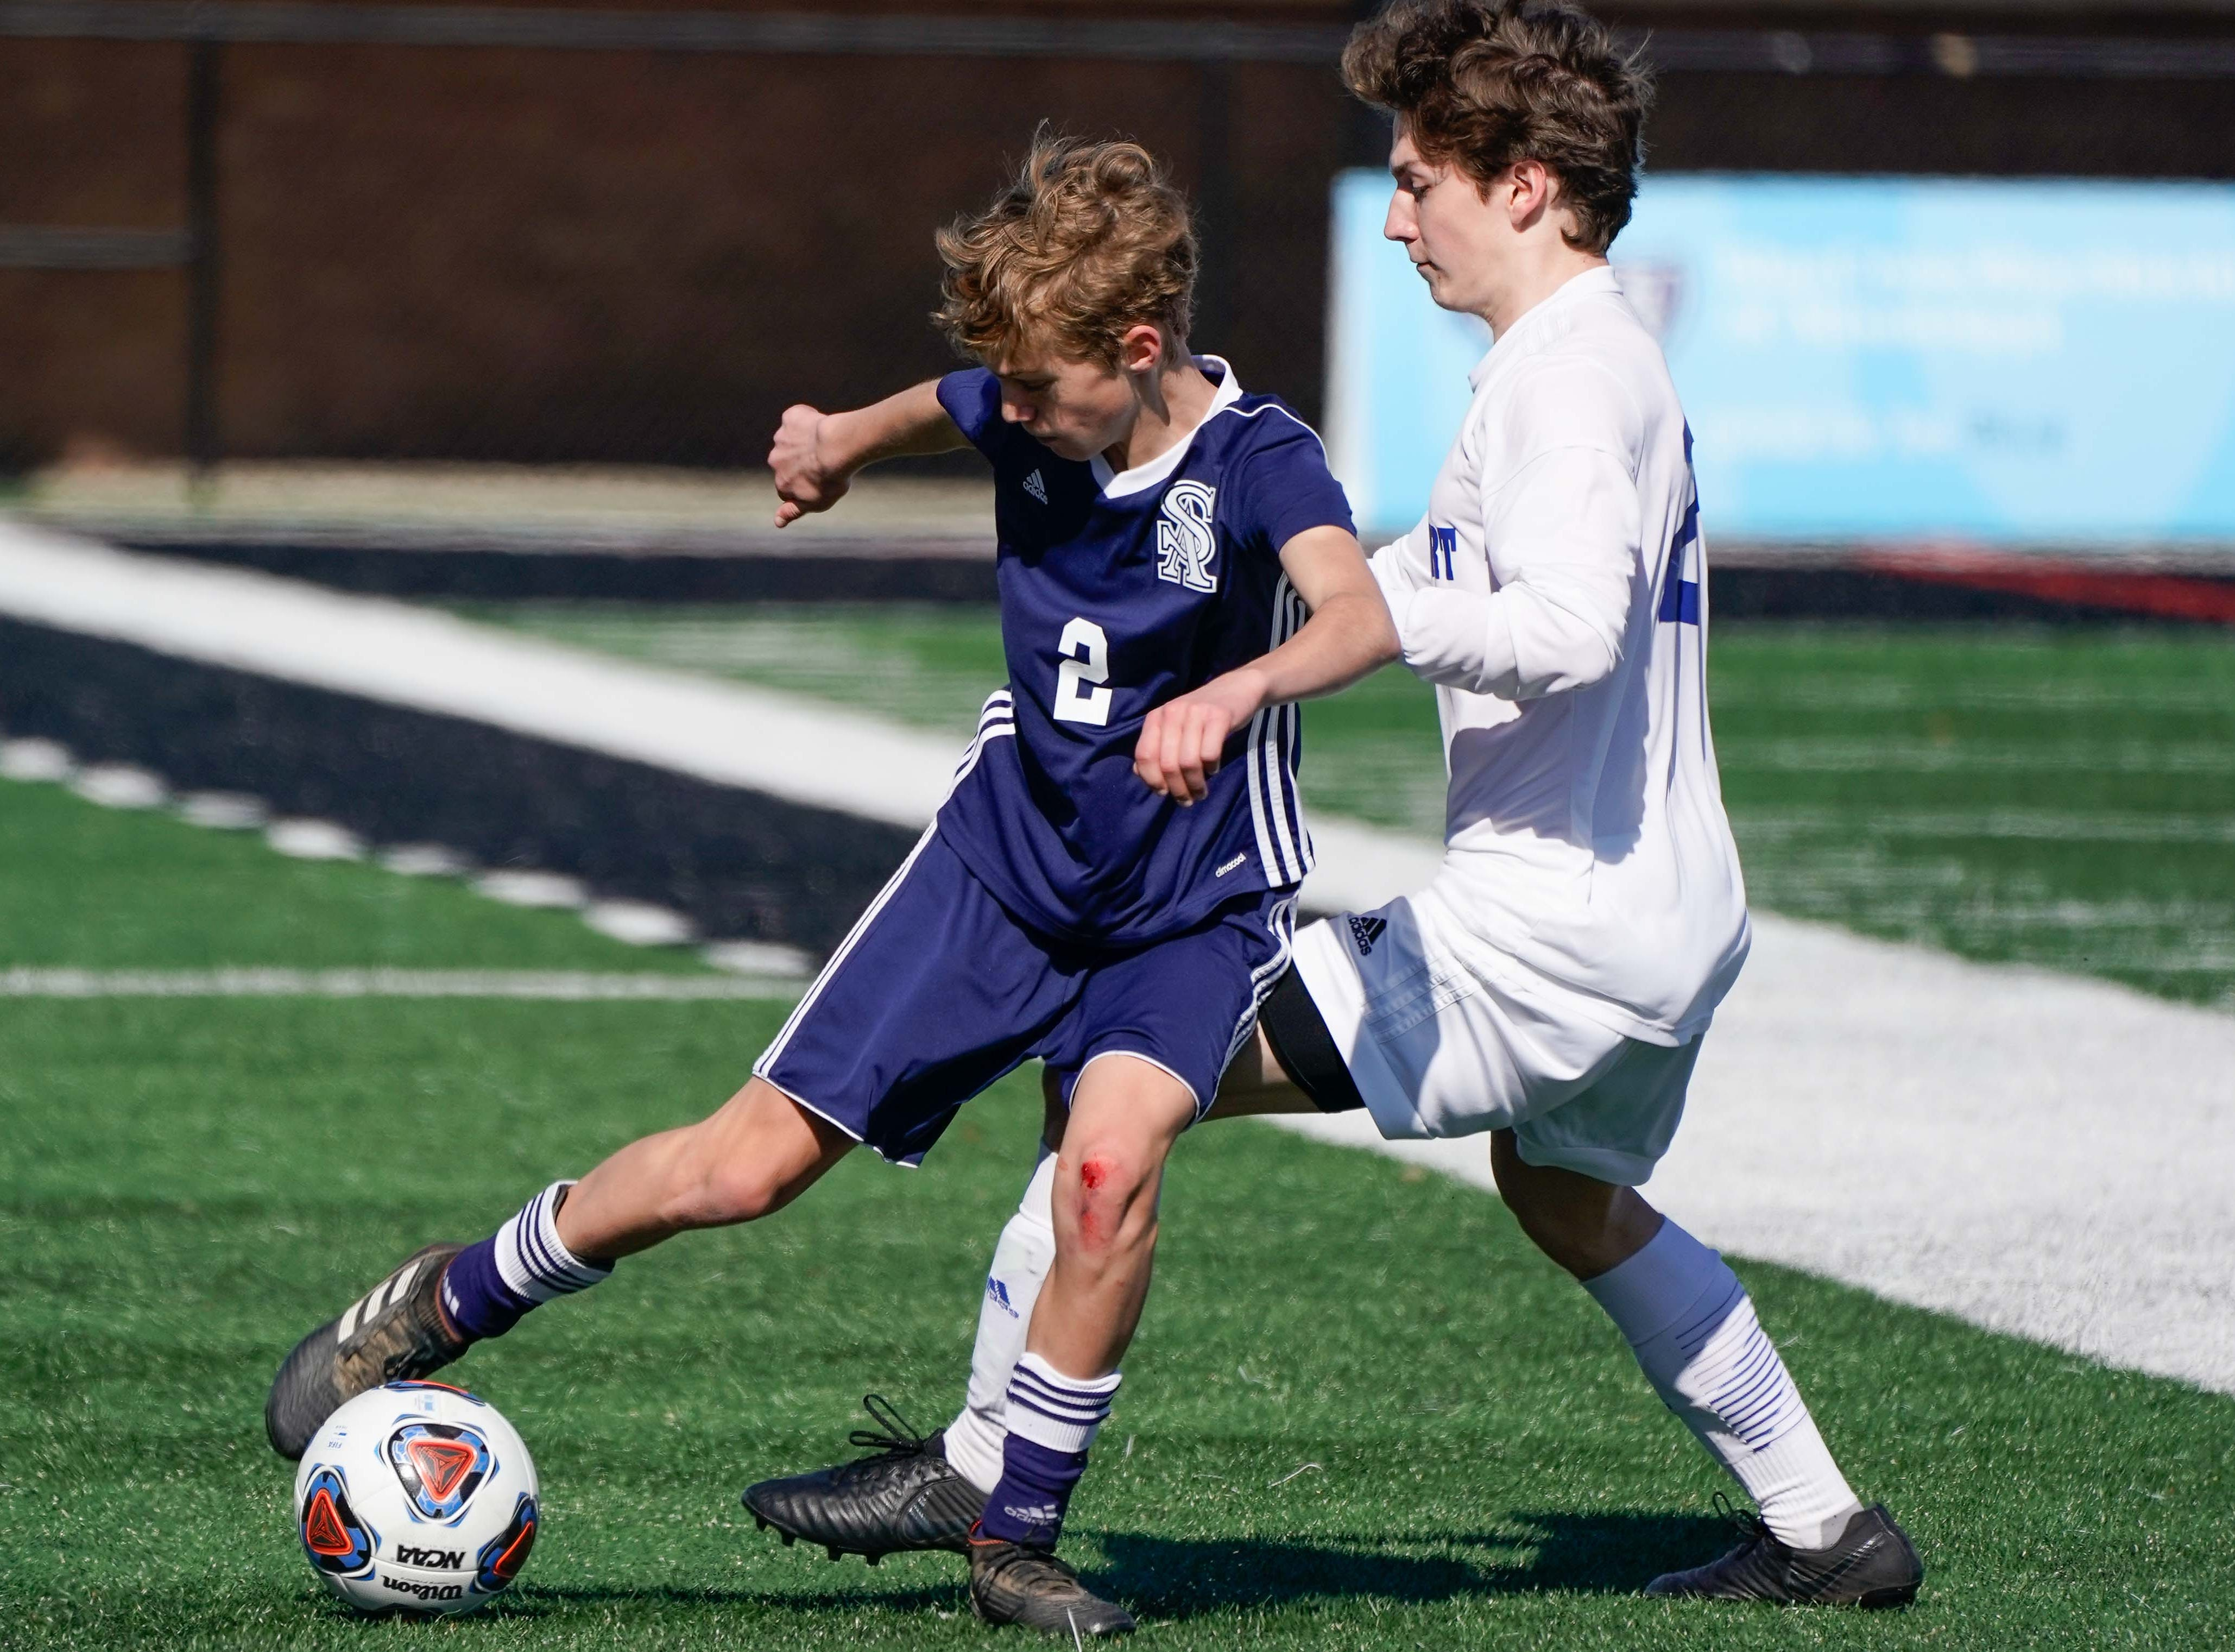 St. Andrew's Joshua Harvel (2) controals a ball against Sacred Heart during the MHSAA 1A,2A,3A  Boys Soccer Championships held at Brandon High School in Brandon, MS, Saturday February 9, 2019.(Bob Smith-For The Clarion Ledger)